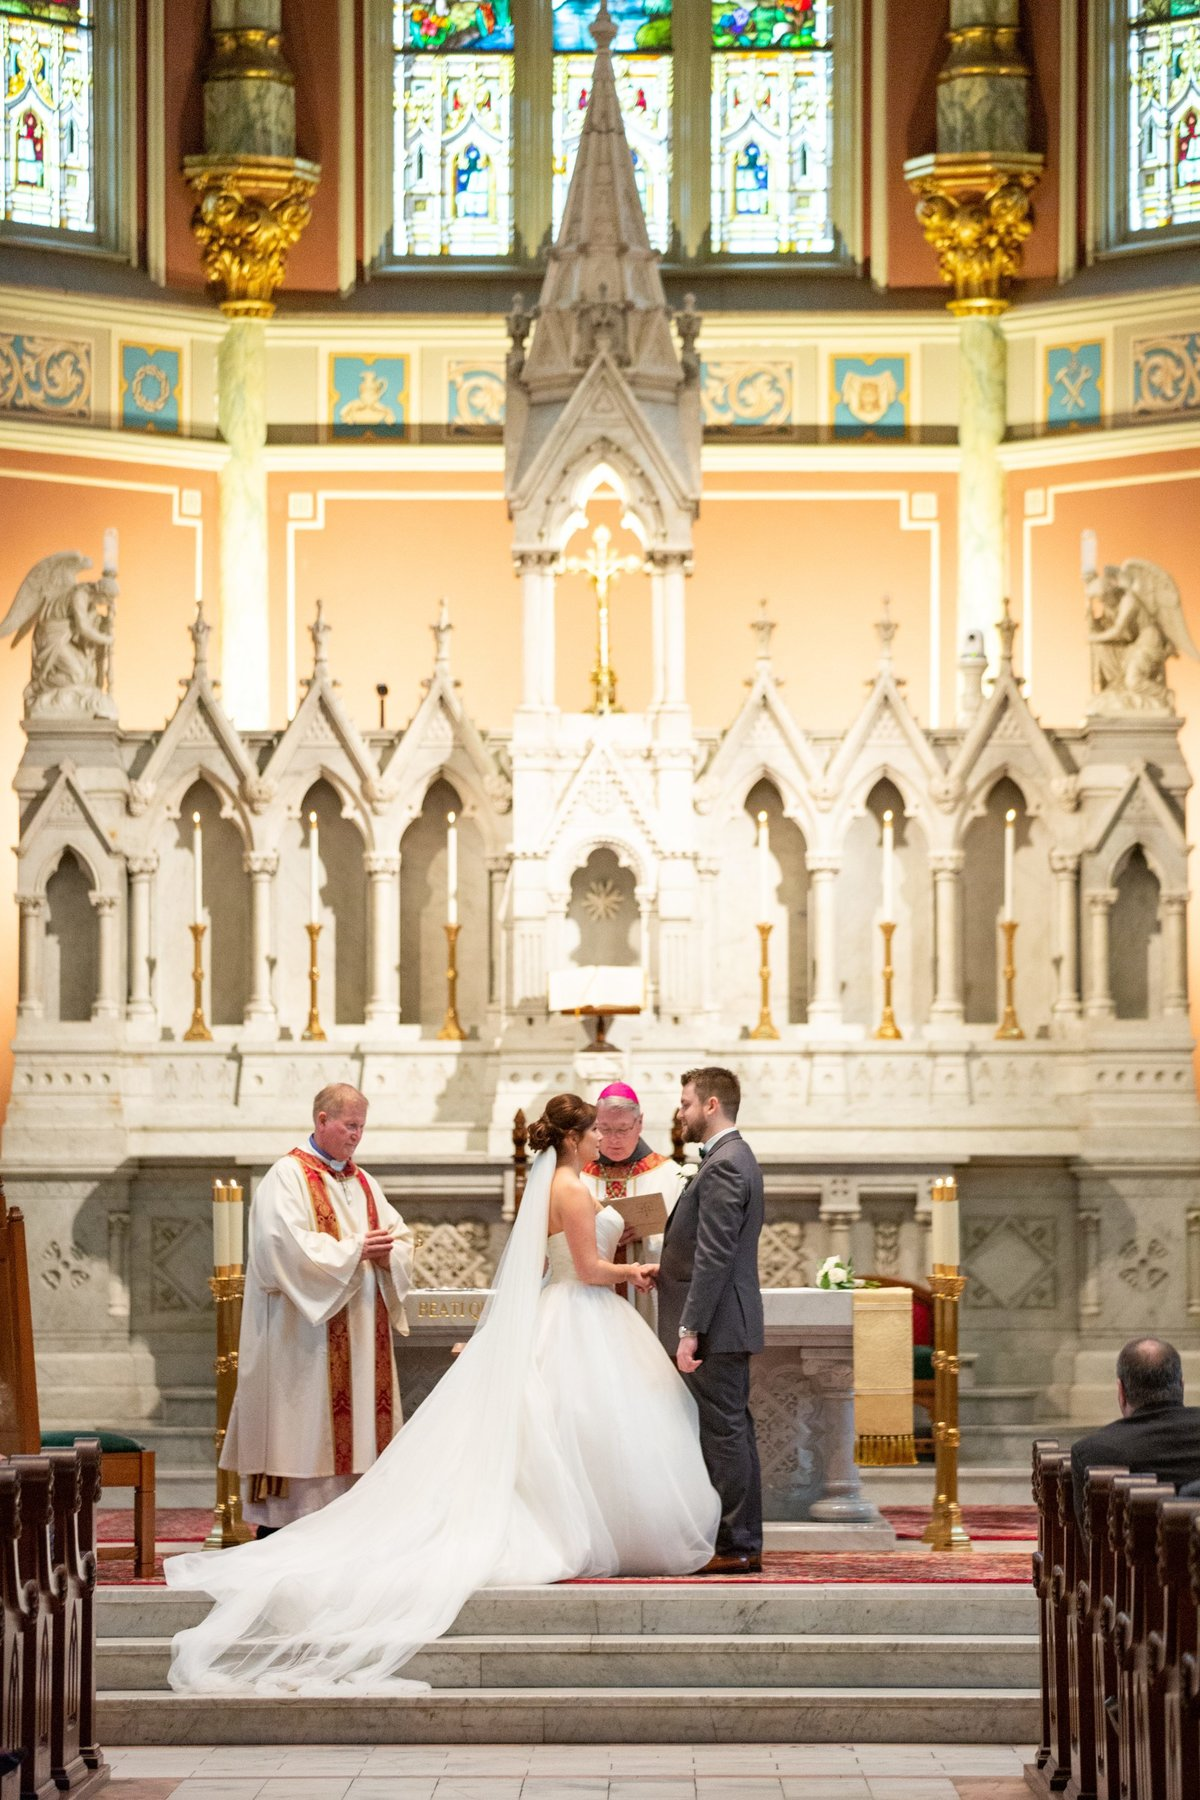 savannah-wedding-photographer-cathedral-soho-south-wedding-11